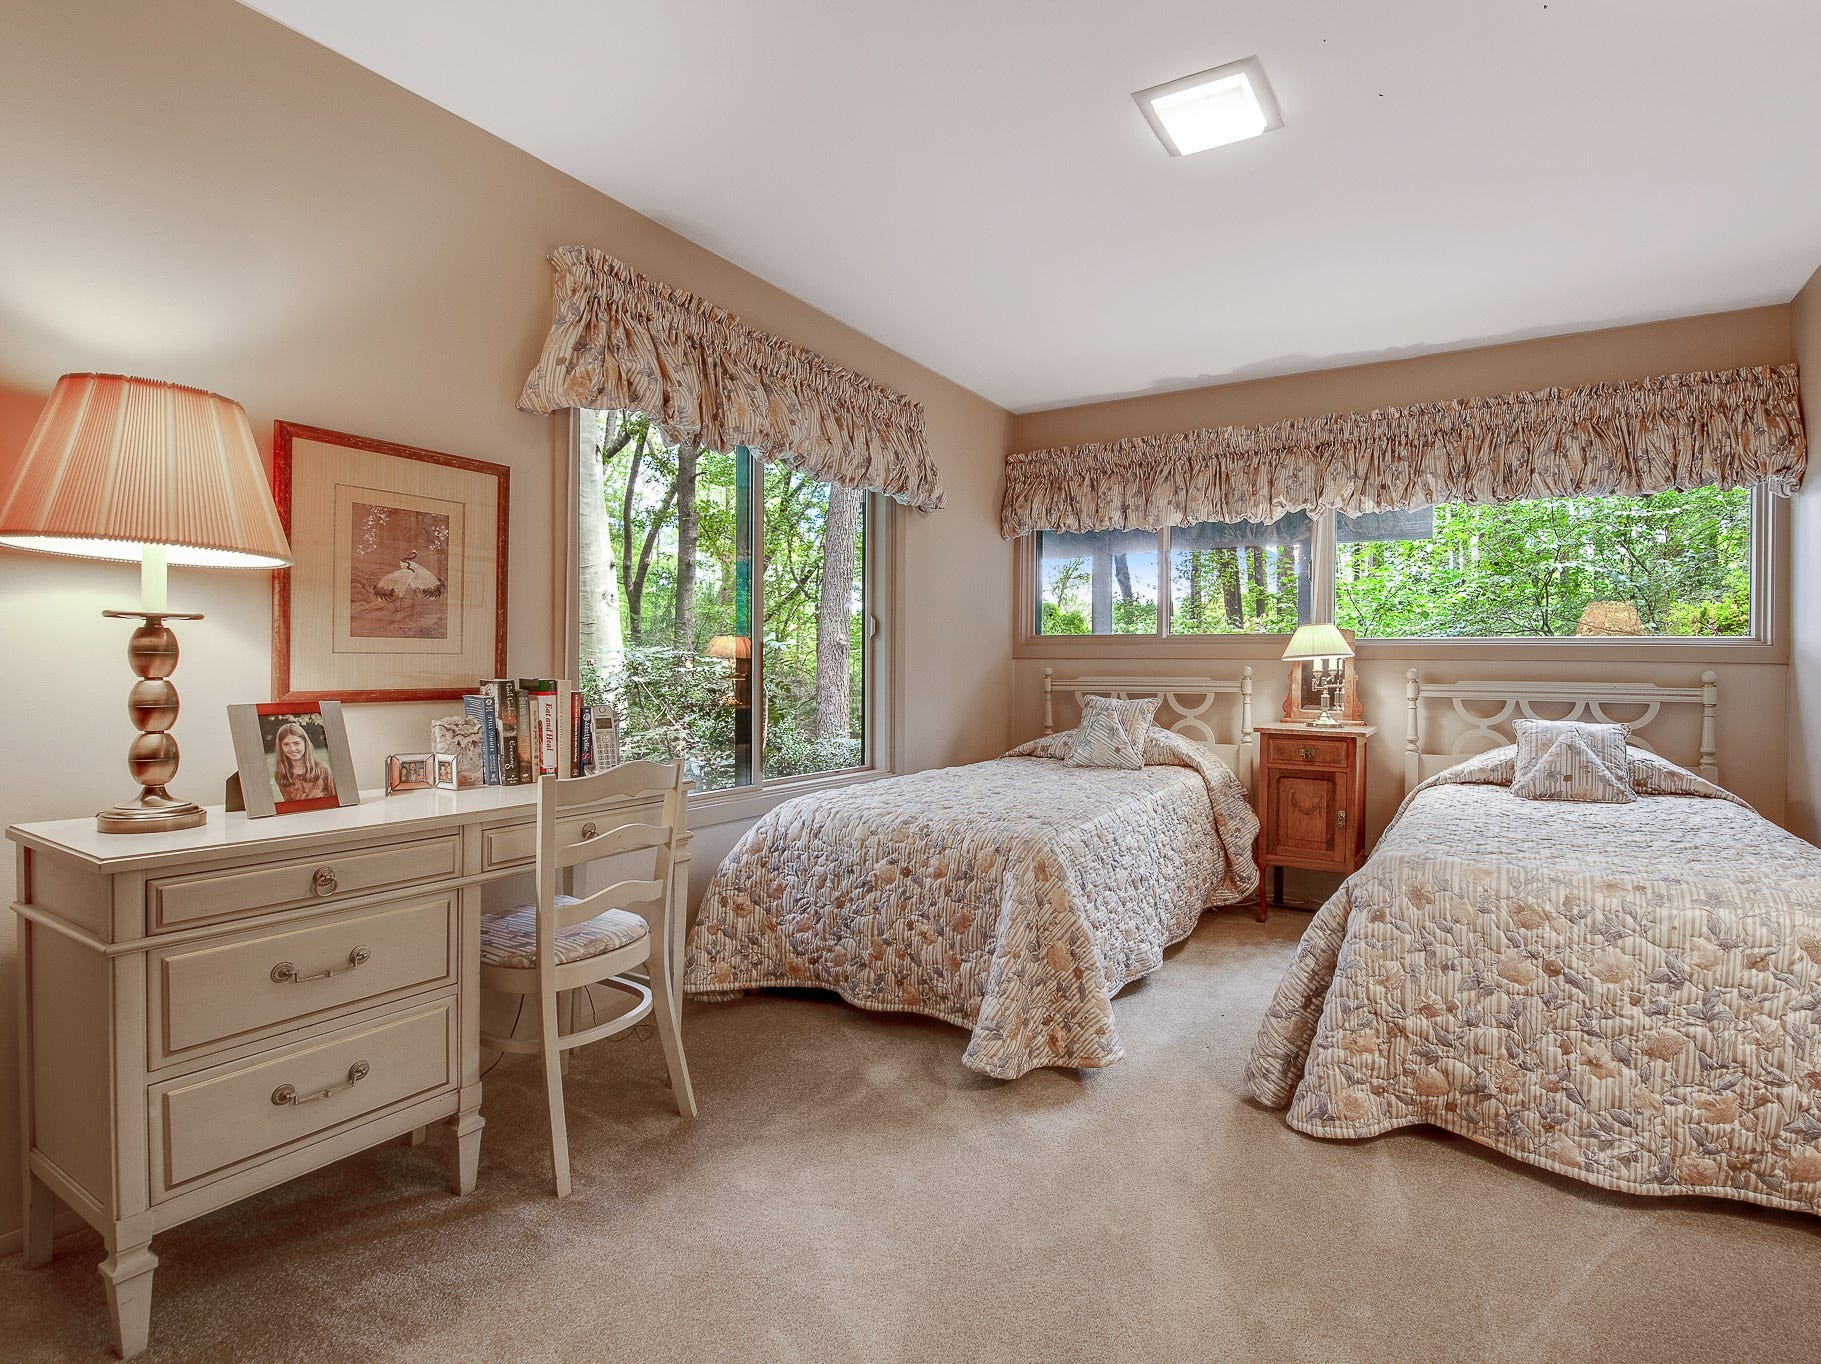 The house at 110 Thissell in Greenville has four bedrooms, all with great views.